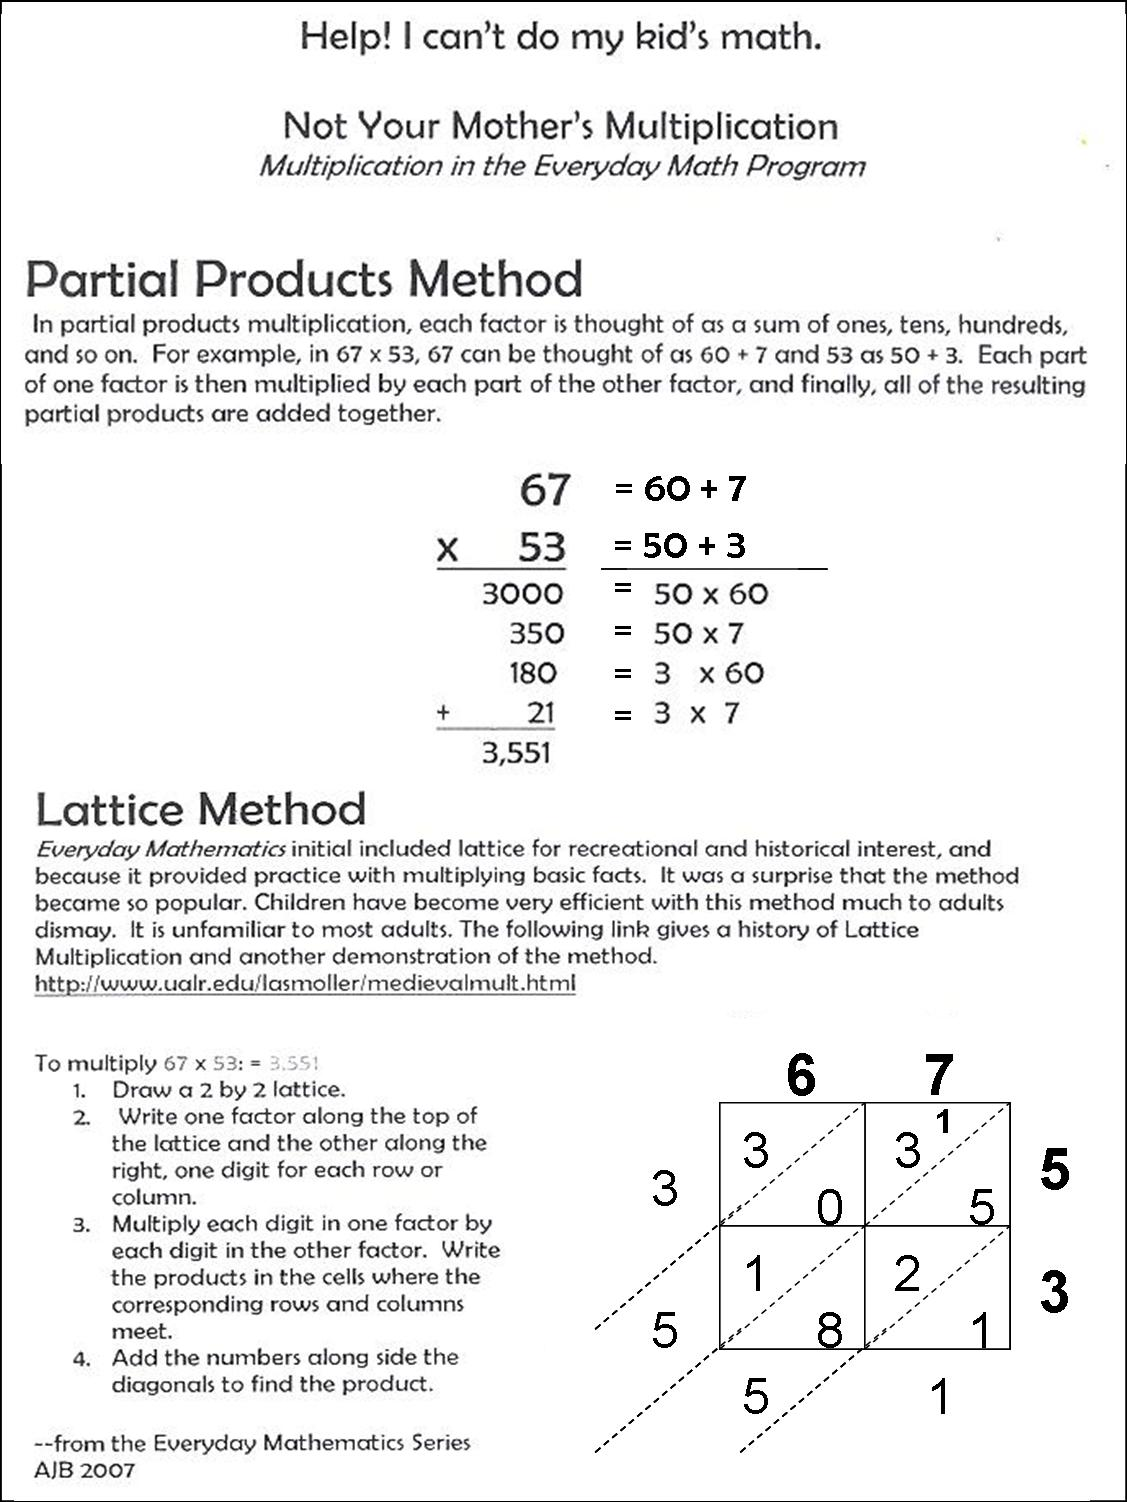 10 Best Images Of Partial Products Multiplication